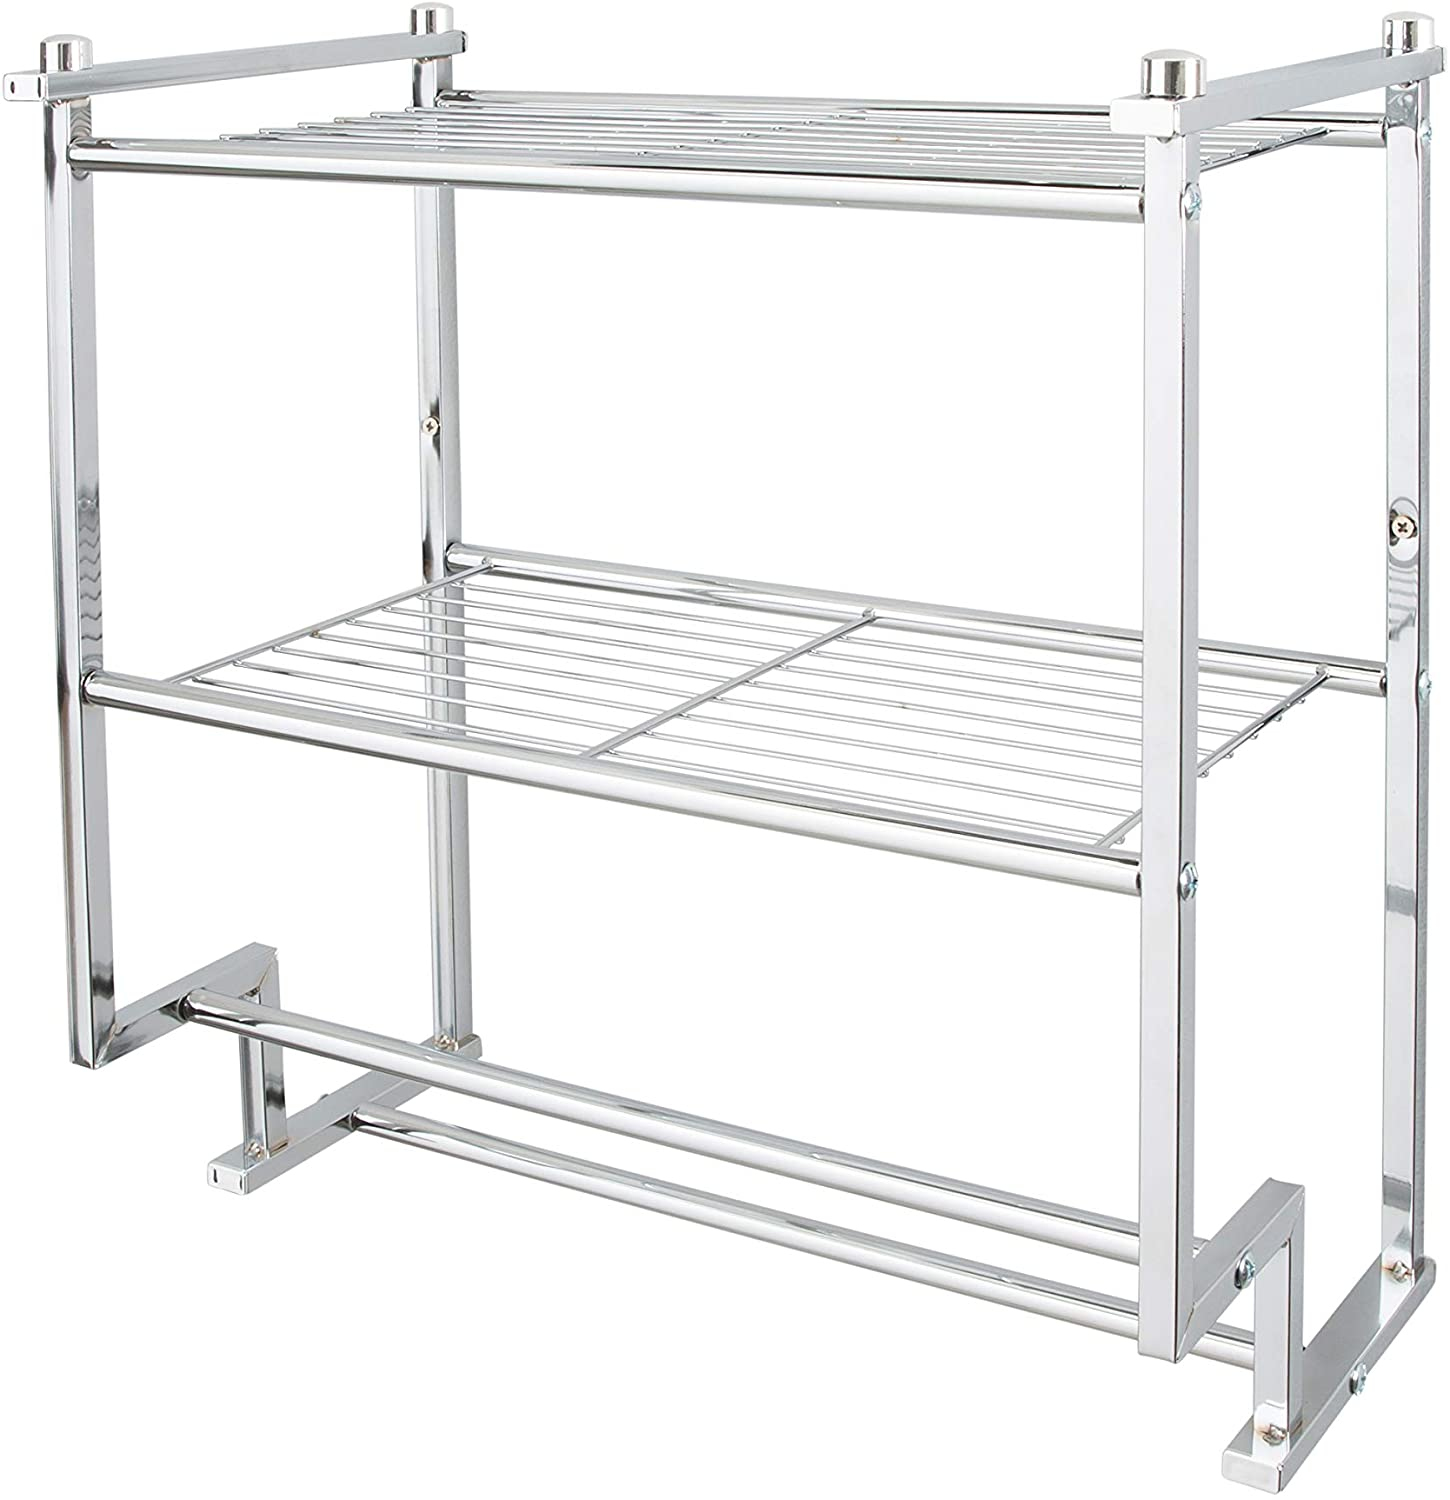 Amazon Com Organize It All Chrome 2 Tier Wall Mounting Bathroom Rack With Towel Bars Home Kitchen